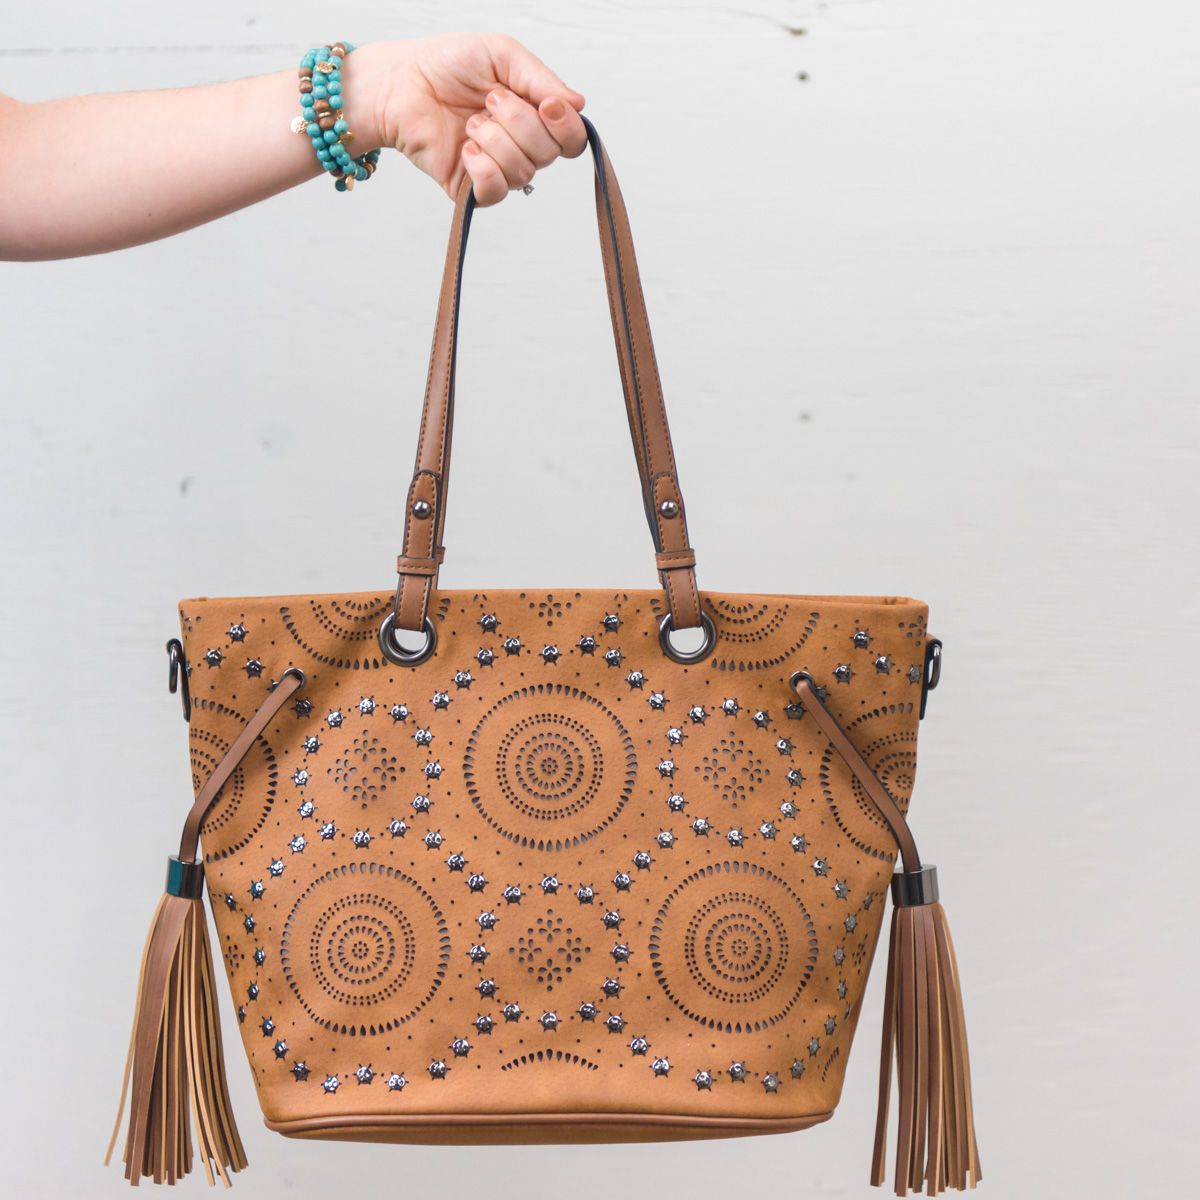 Stud Bag with Tassels